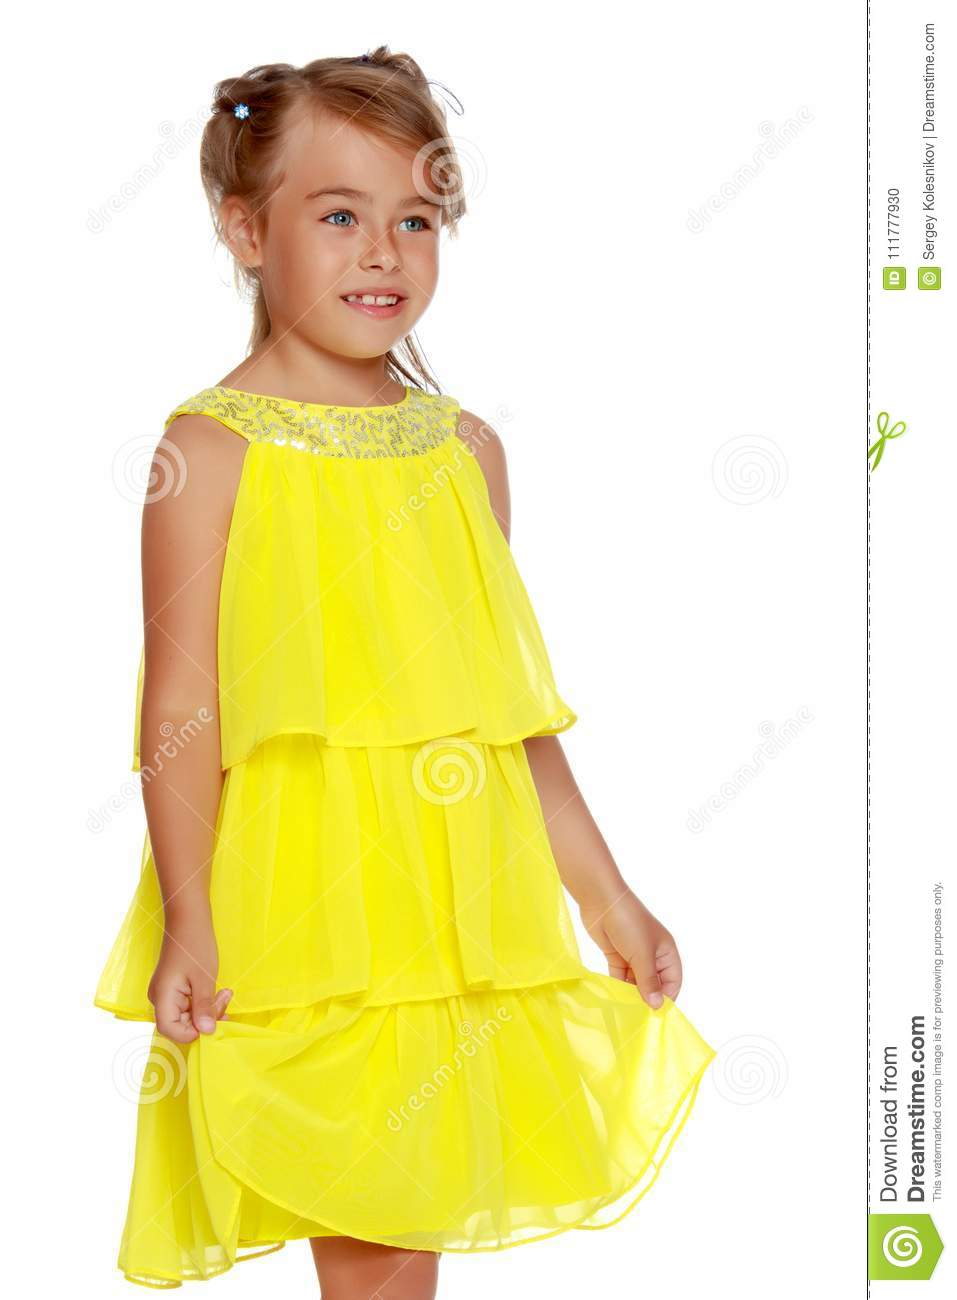 Fashionable little girl in a dress